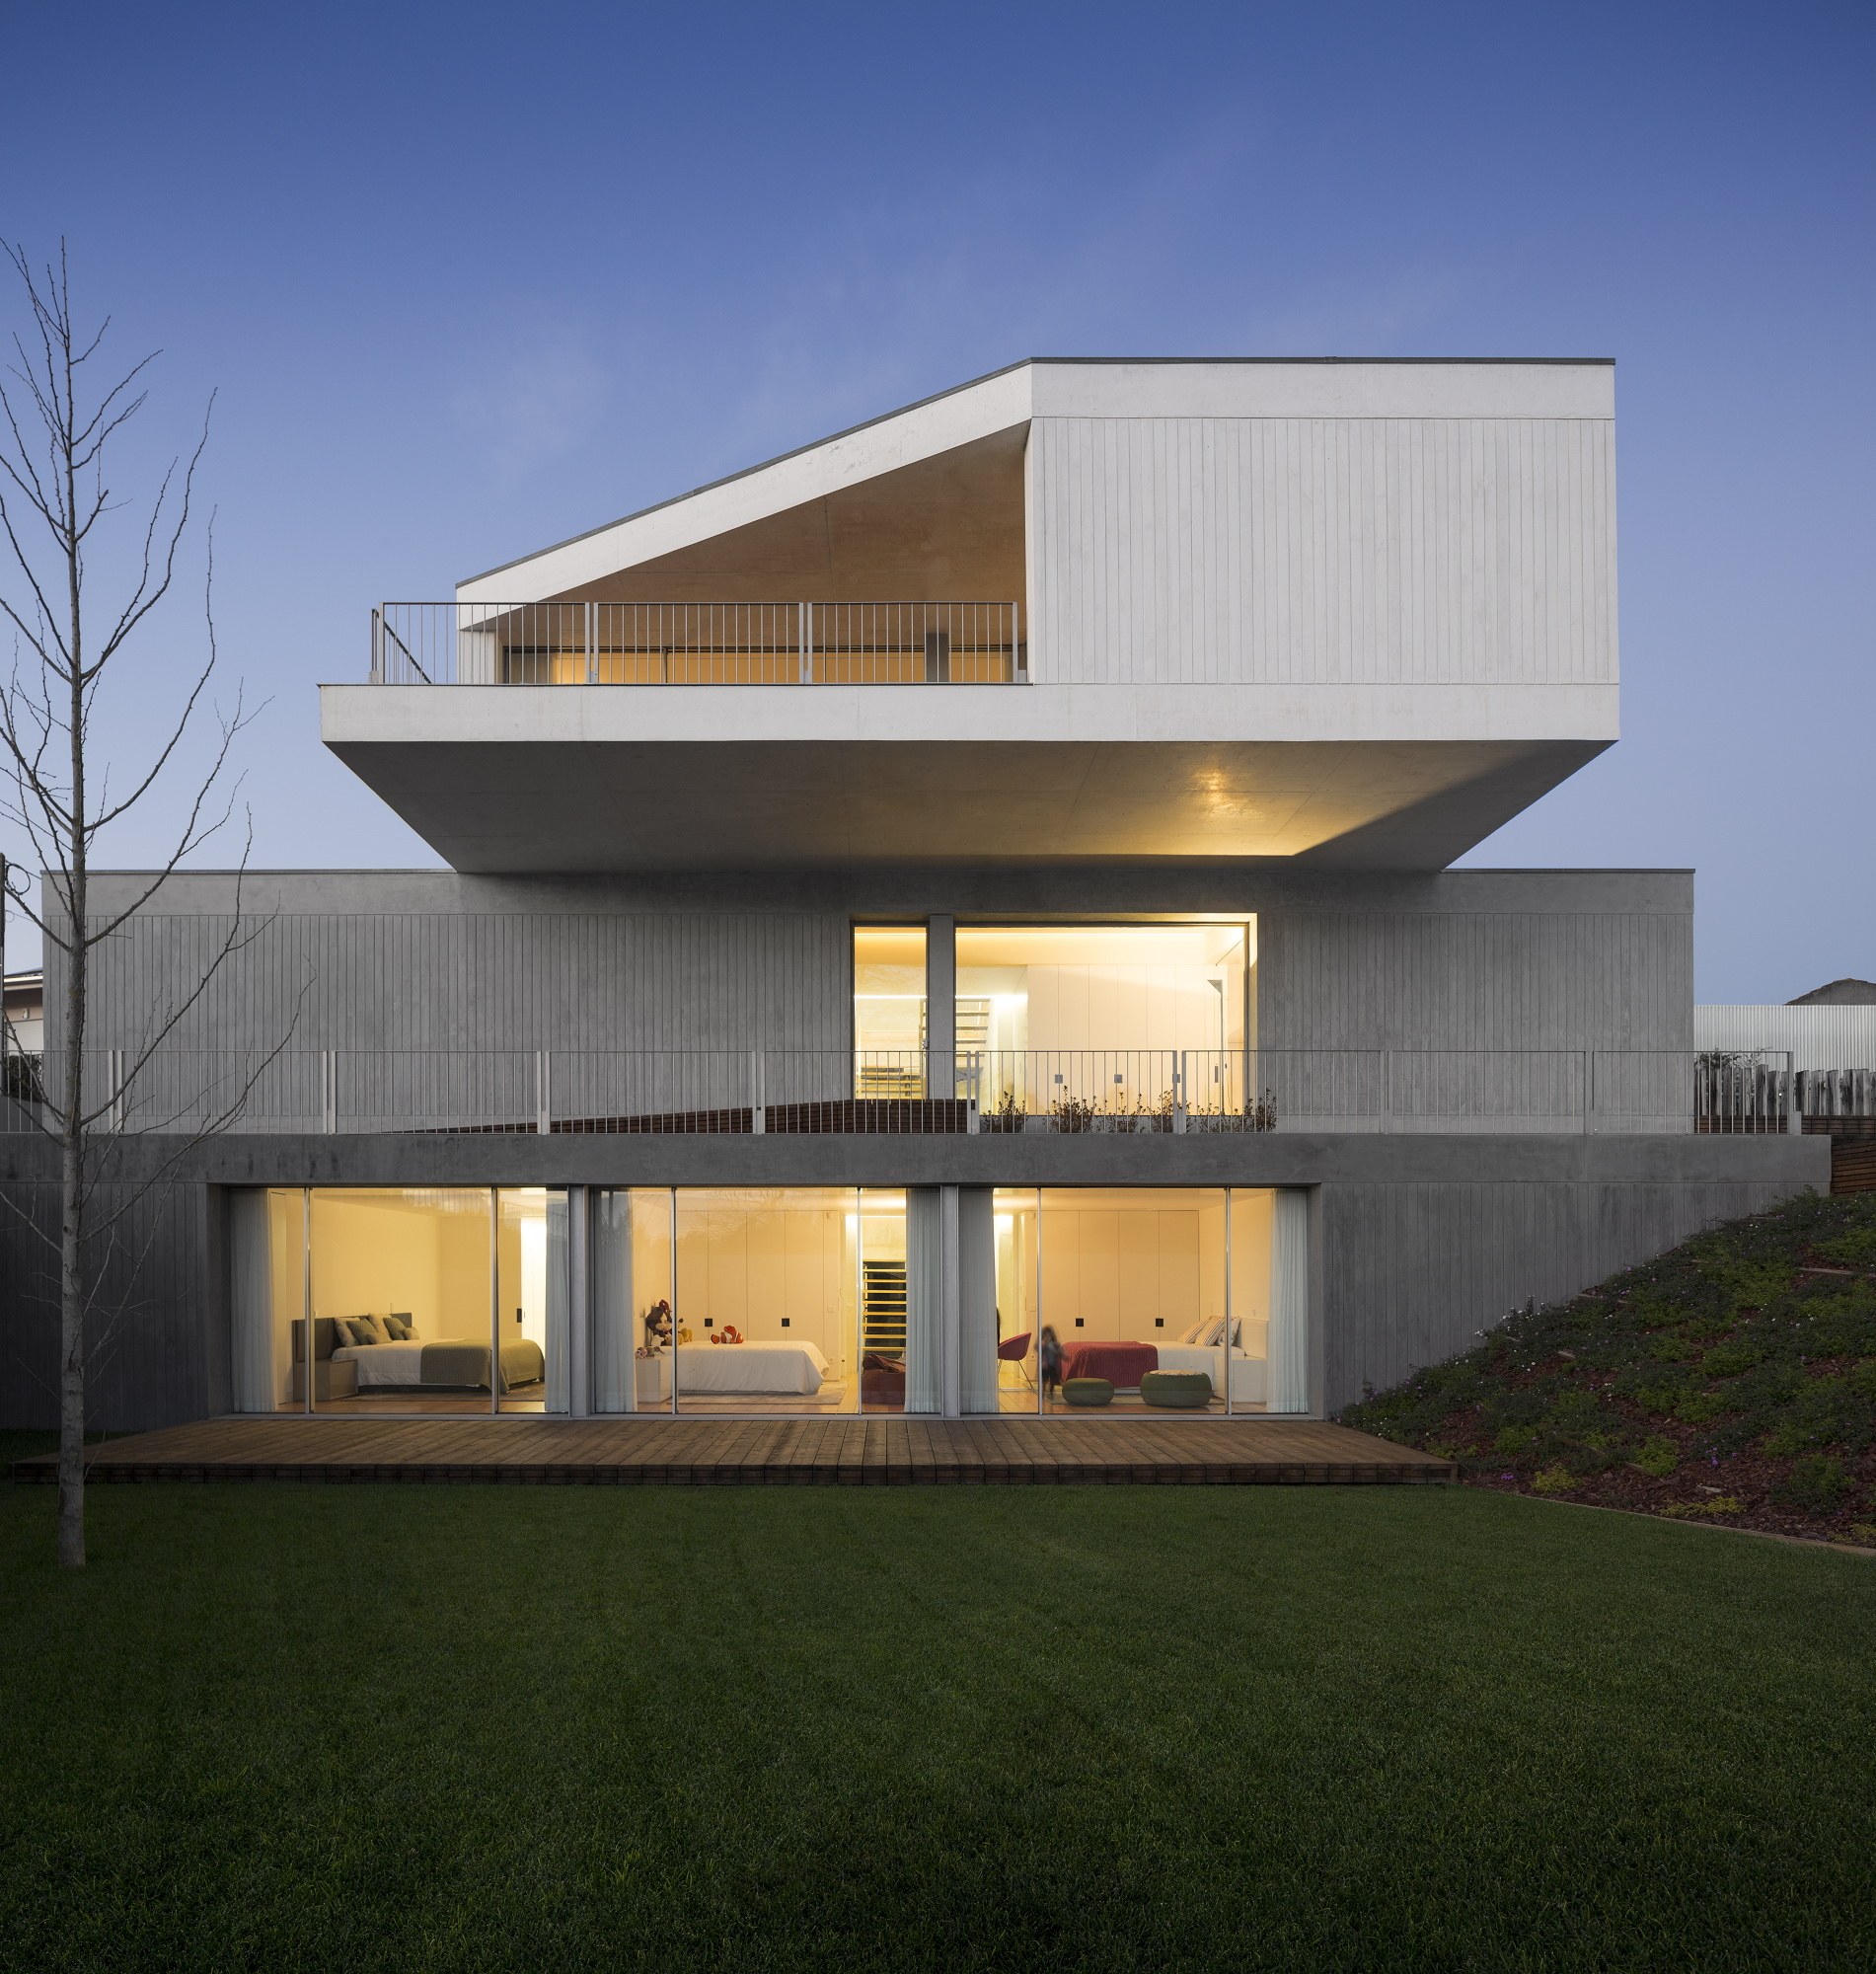 Concrete House in Travanca by Nelson Resende